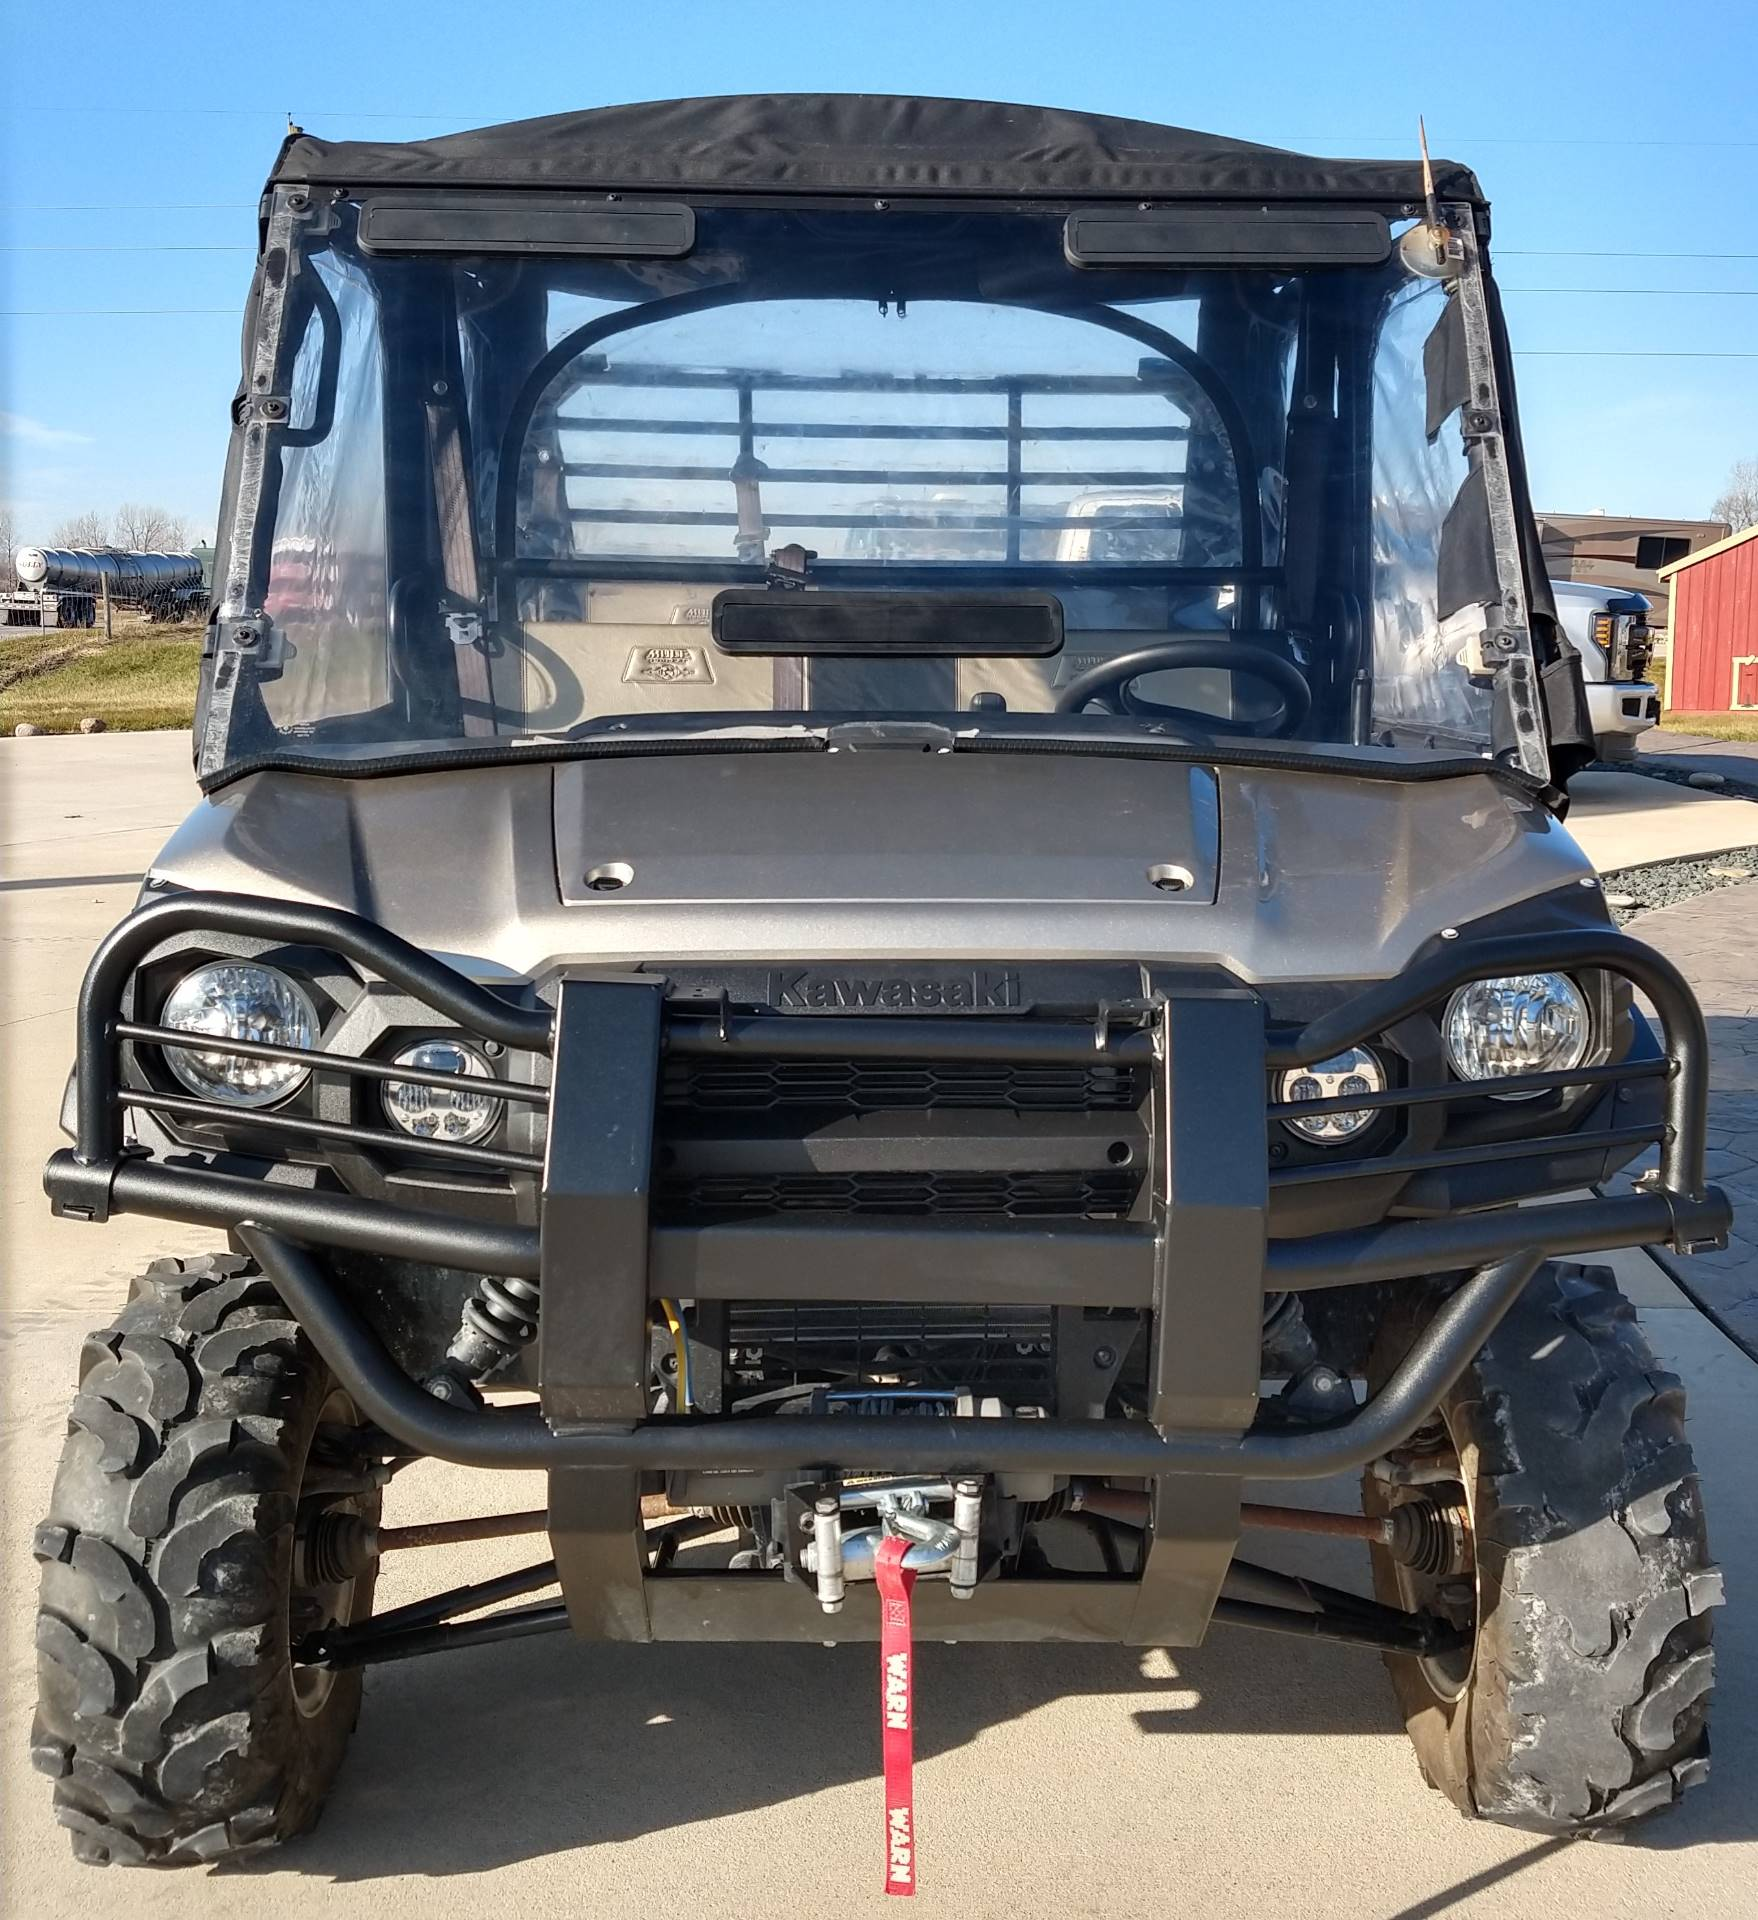 2016 Kawasaki Mule Pro-FXT Ranch Edition 5